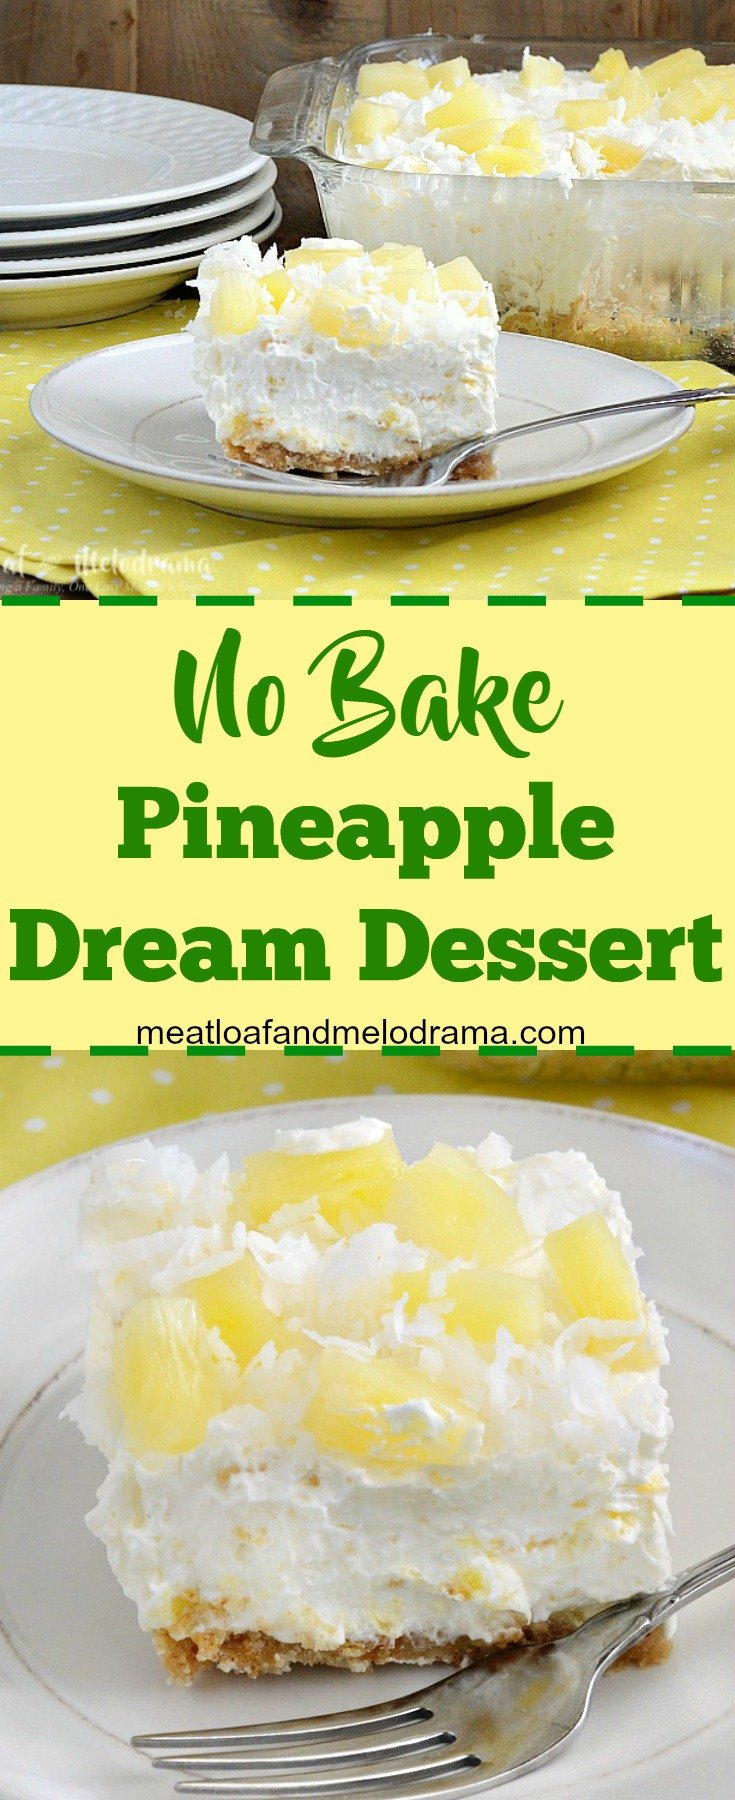 No Bake Pineapple Dream Dessert Meatloaf And Melodrama